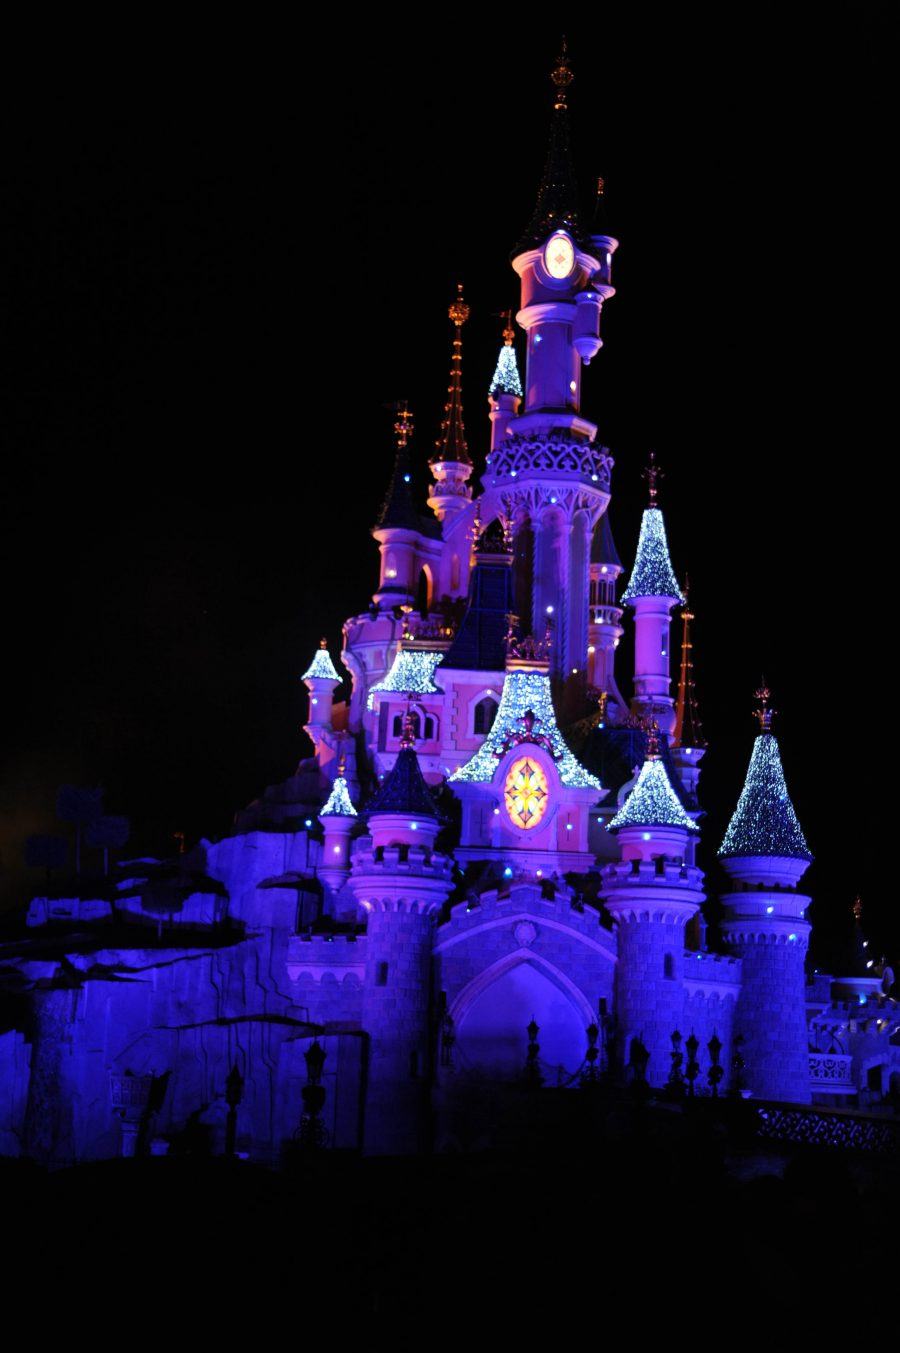 disneylandparis-6